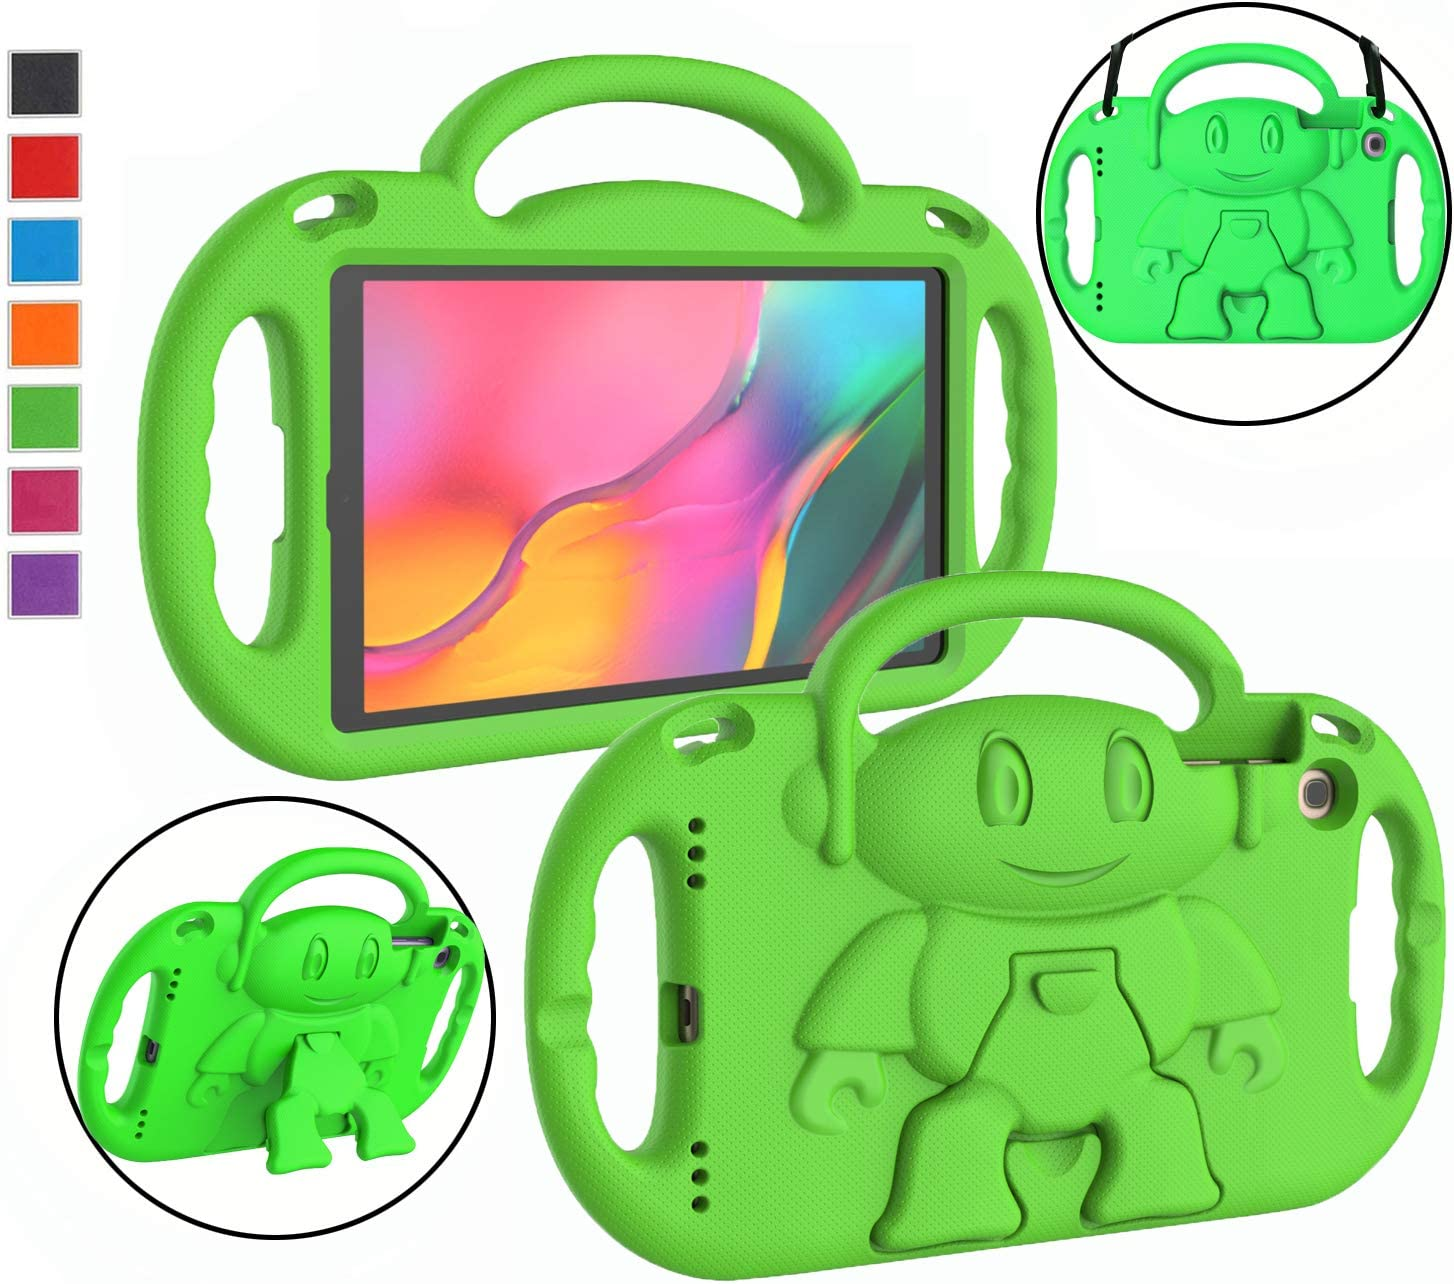 "LTROP Kids Case for Samsung Galaxy Tab A 10.1"" Tablet(2019) SM-T510/T515, Light Weight Shockproof Case Shoulder Strap Handle Stand Child-Proof Bumper Case Cover for Galaxy Tab A 10.1 (Green)"